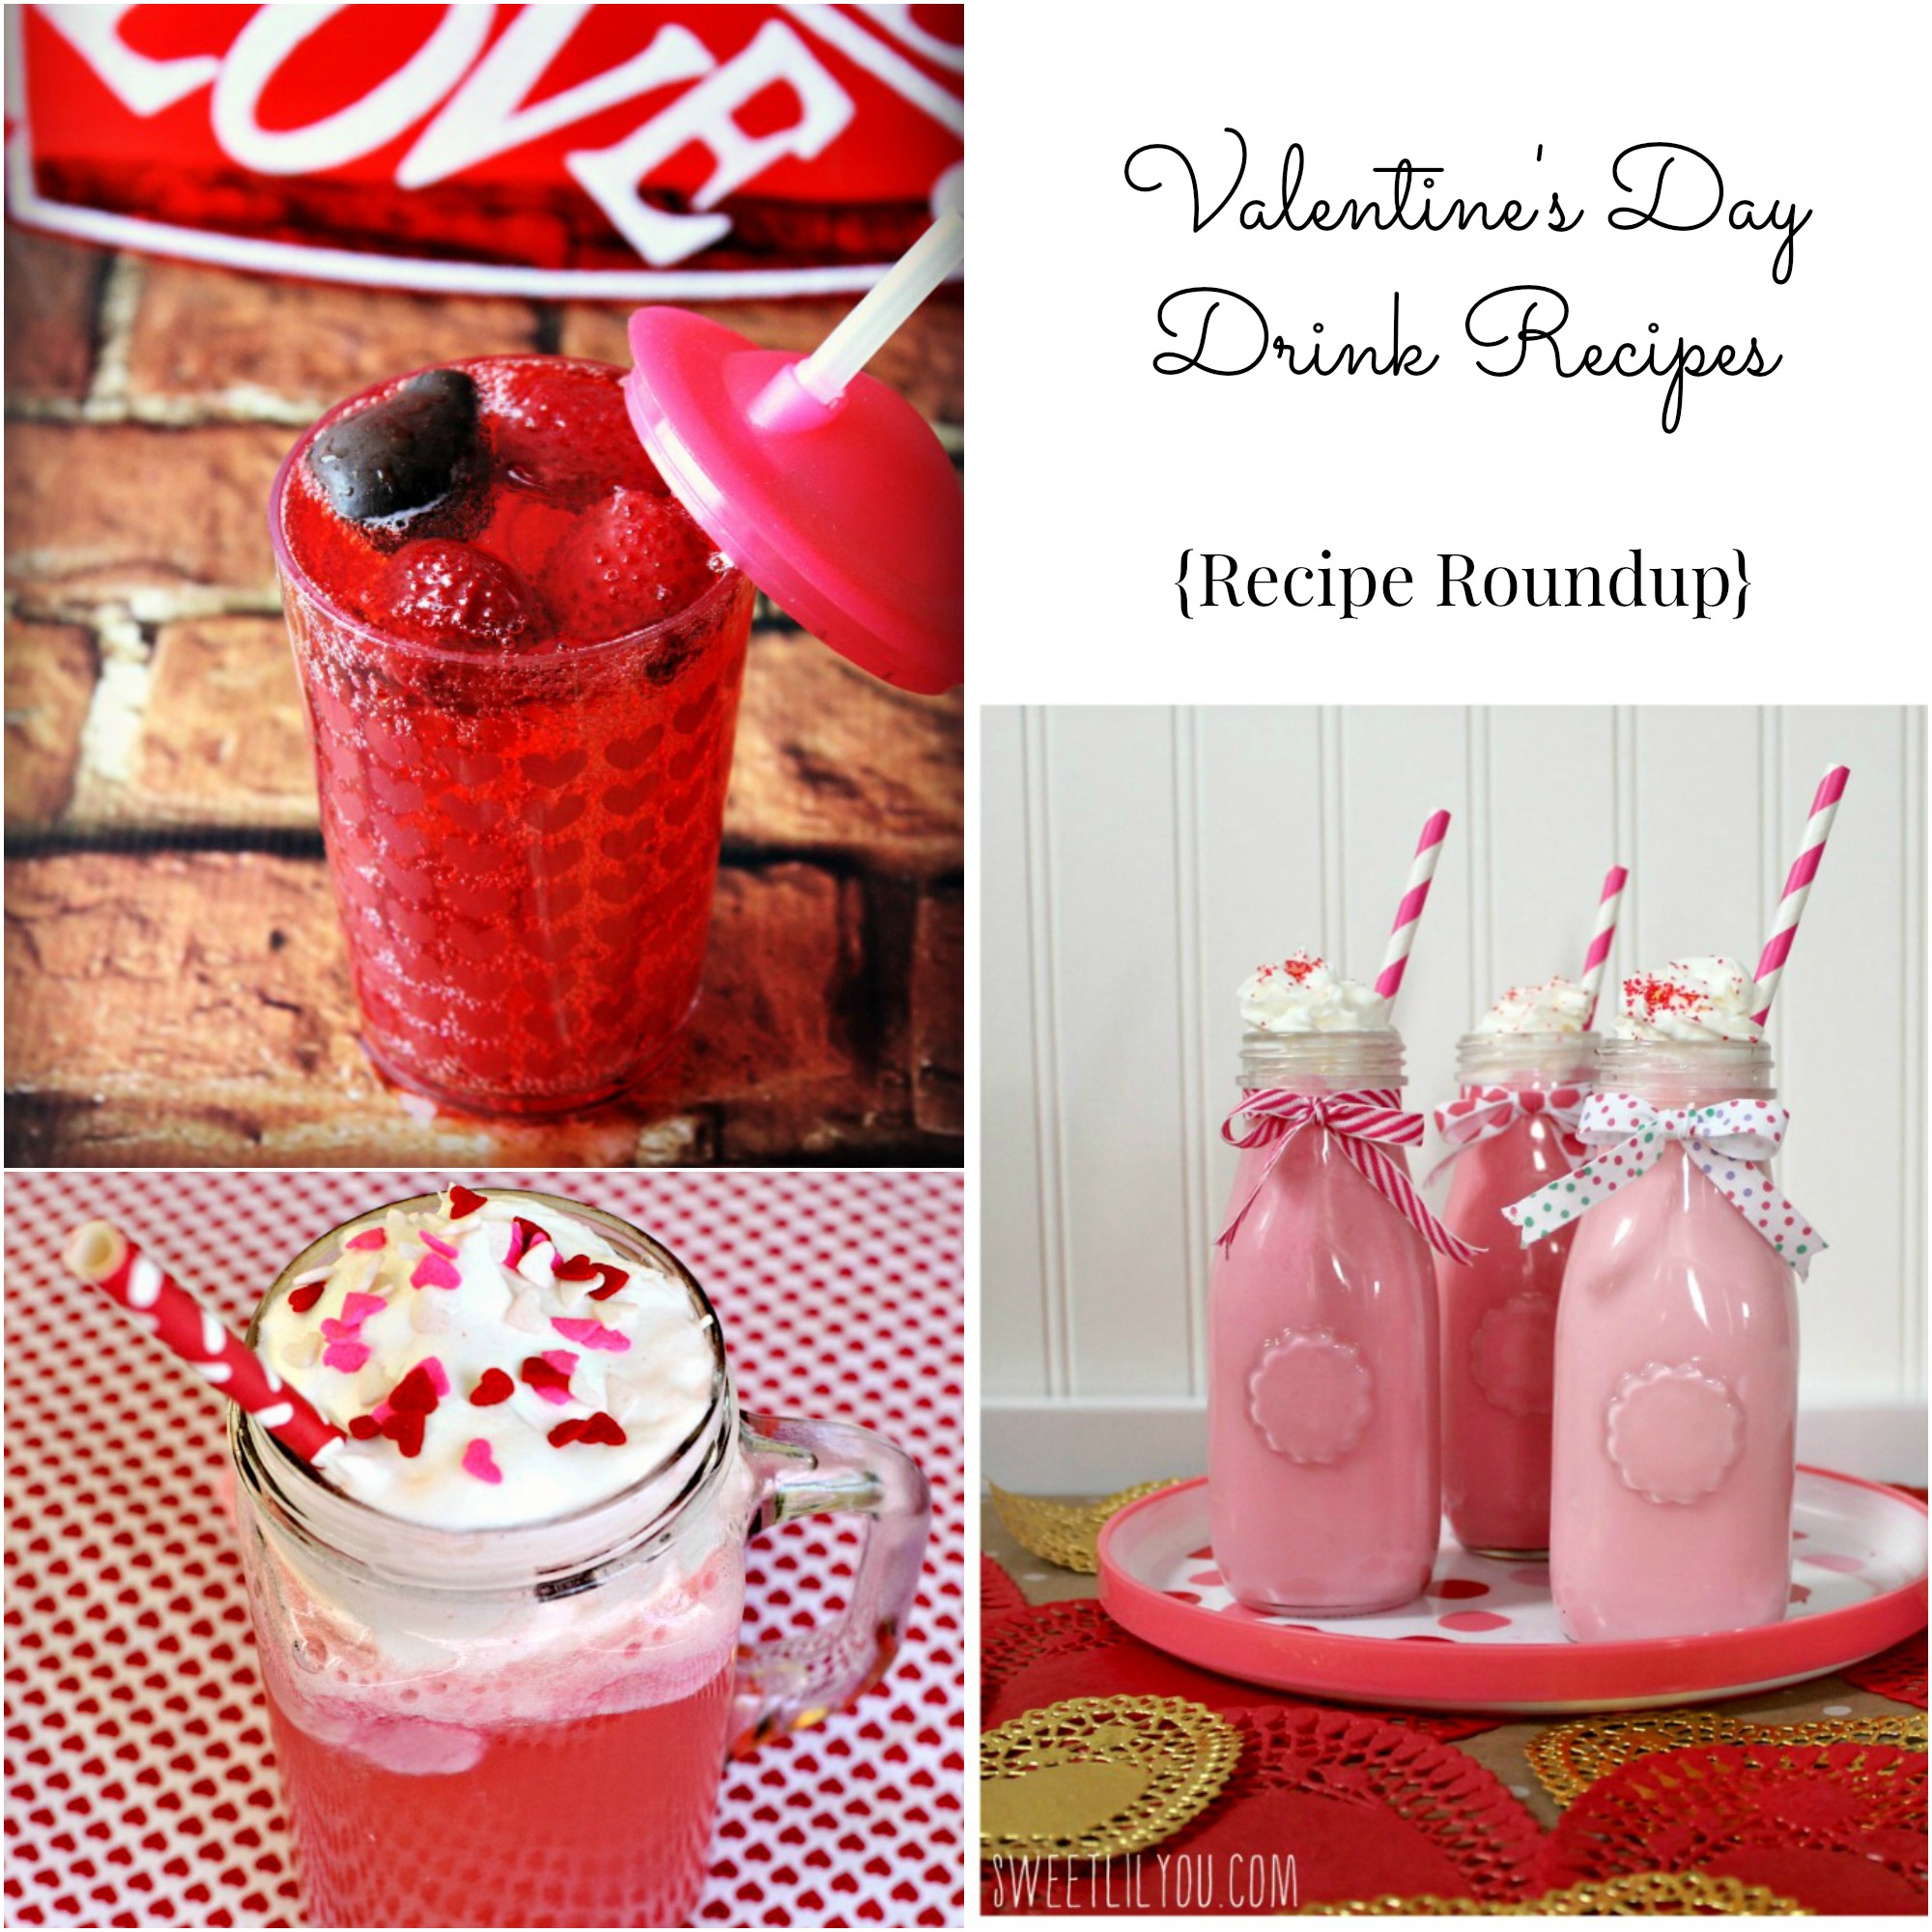 Valentine's Drinks, red drink recipes